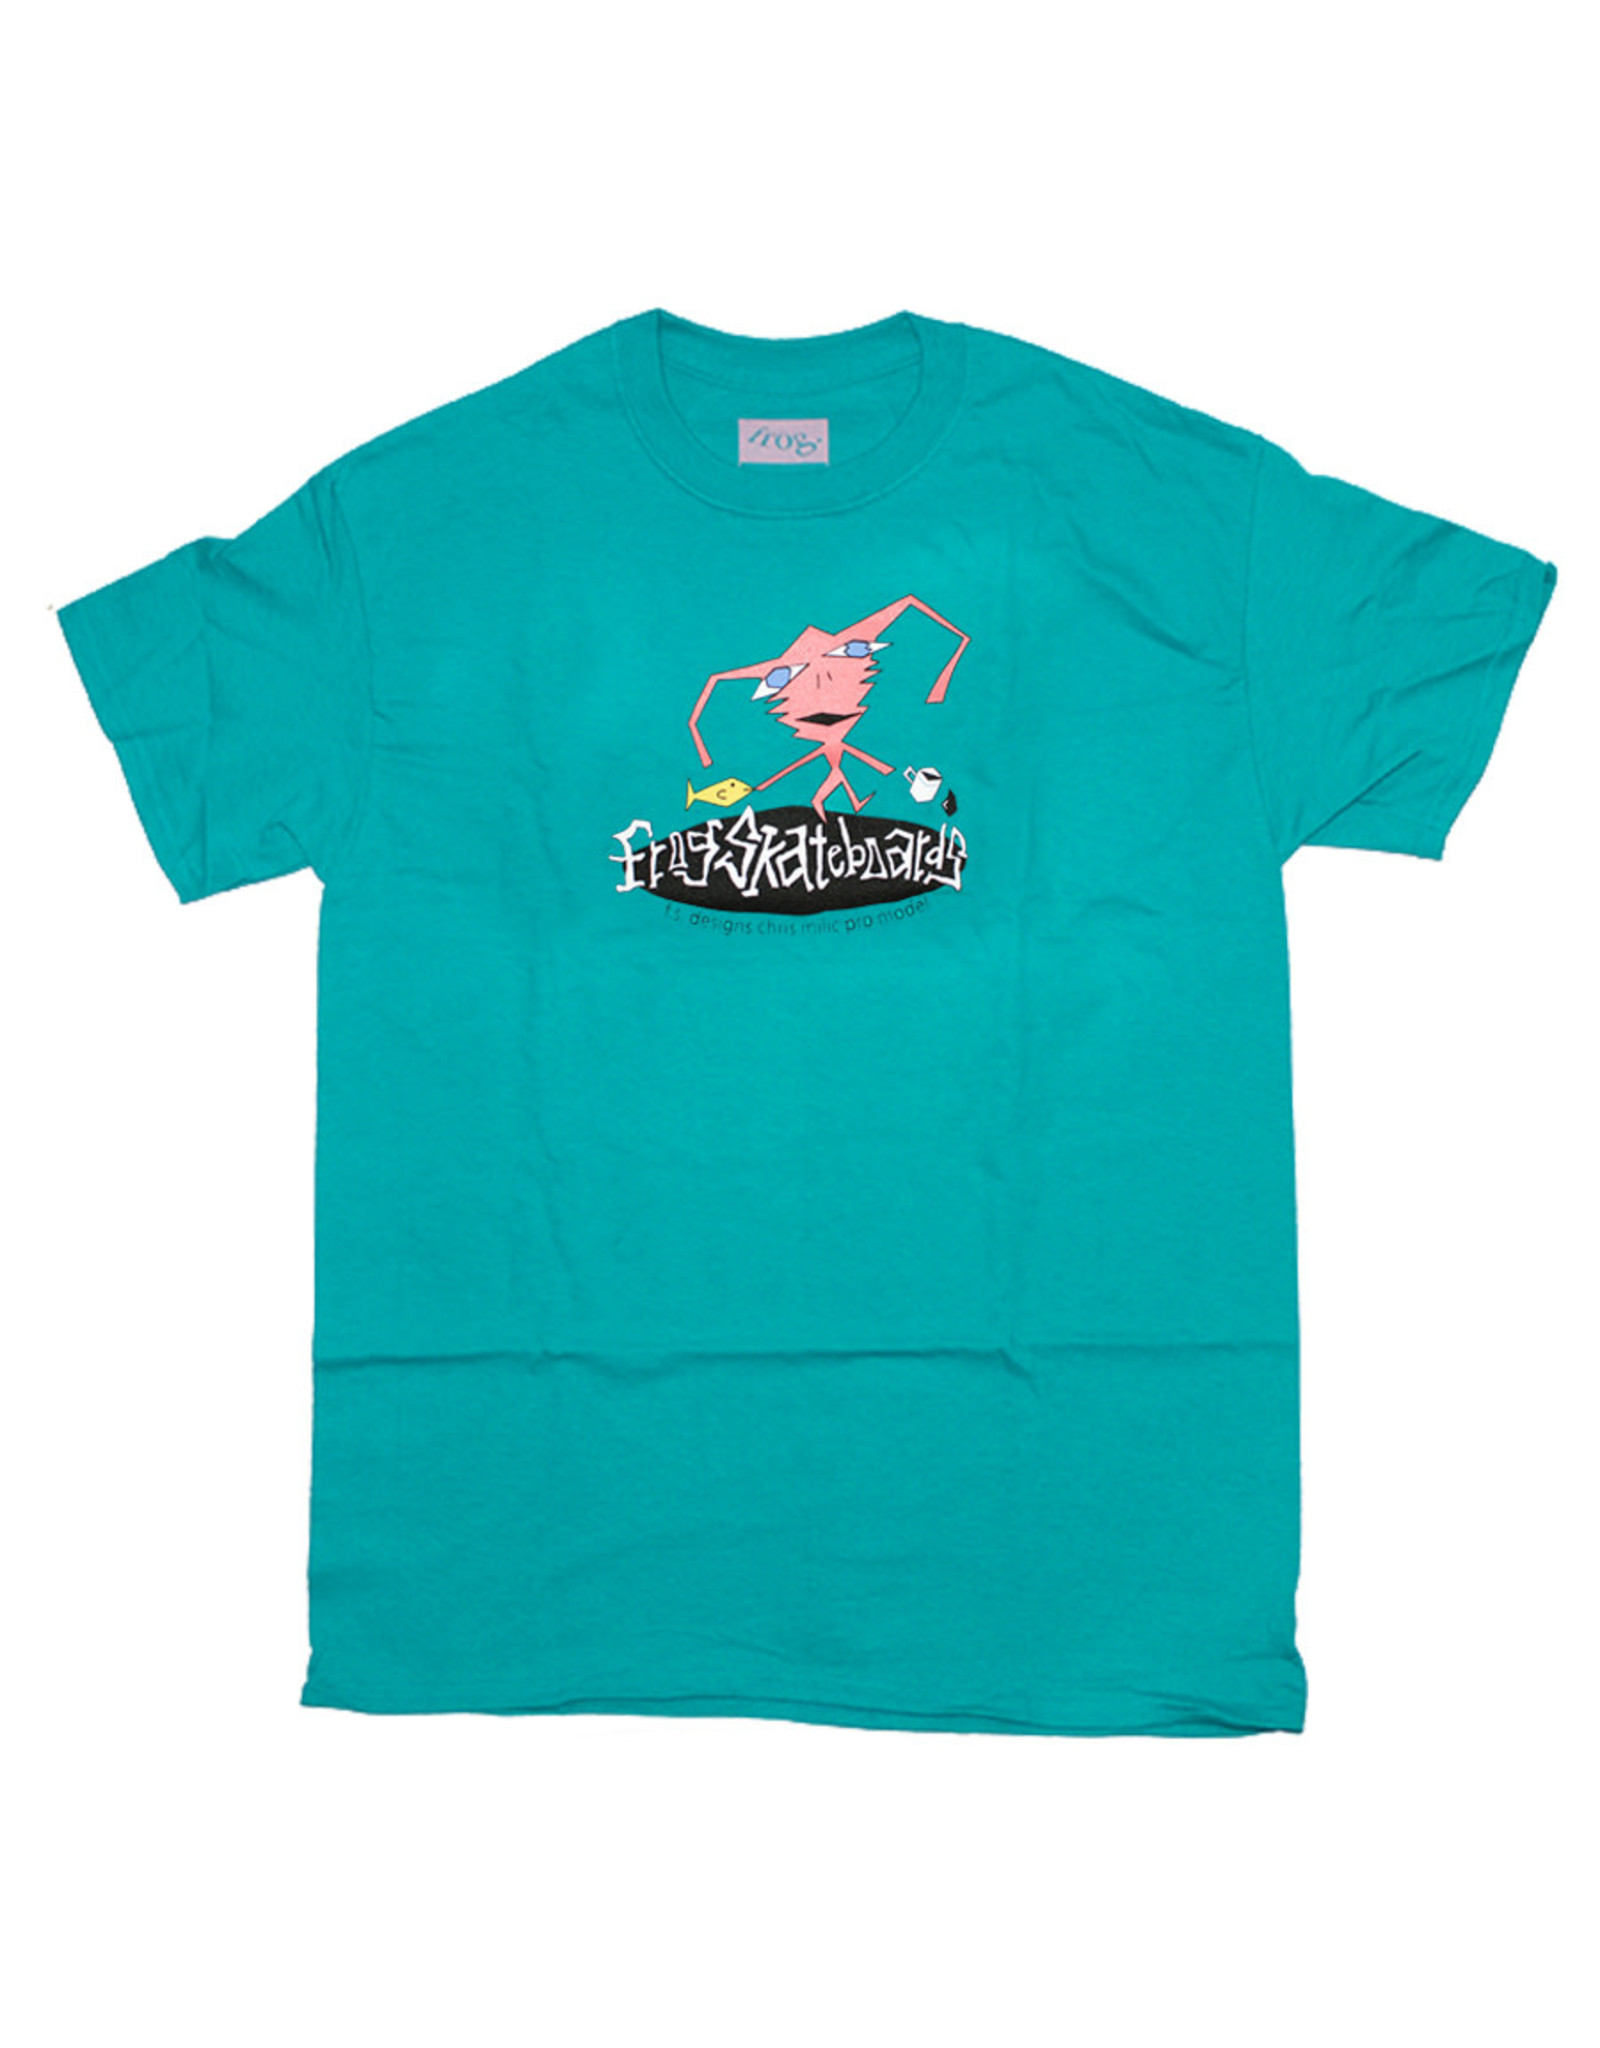 Frog Frog Tee F.S. Designs Chris Milic S/S (Teal)